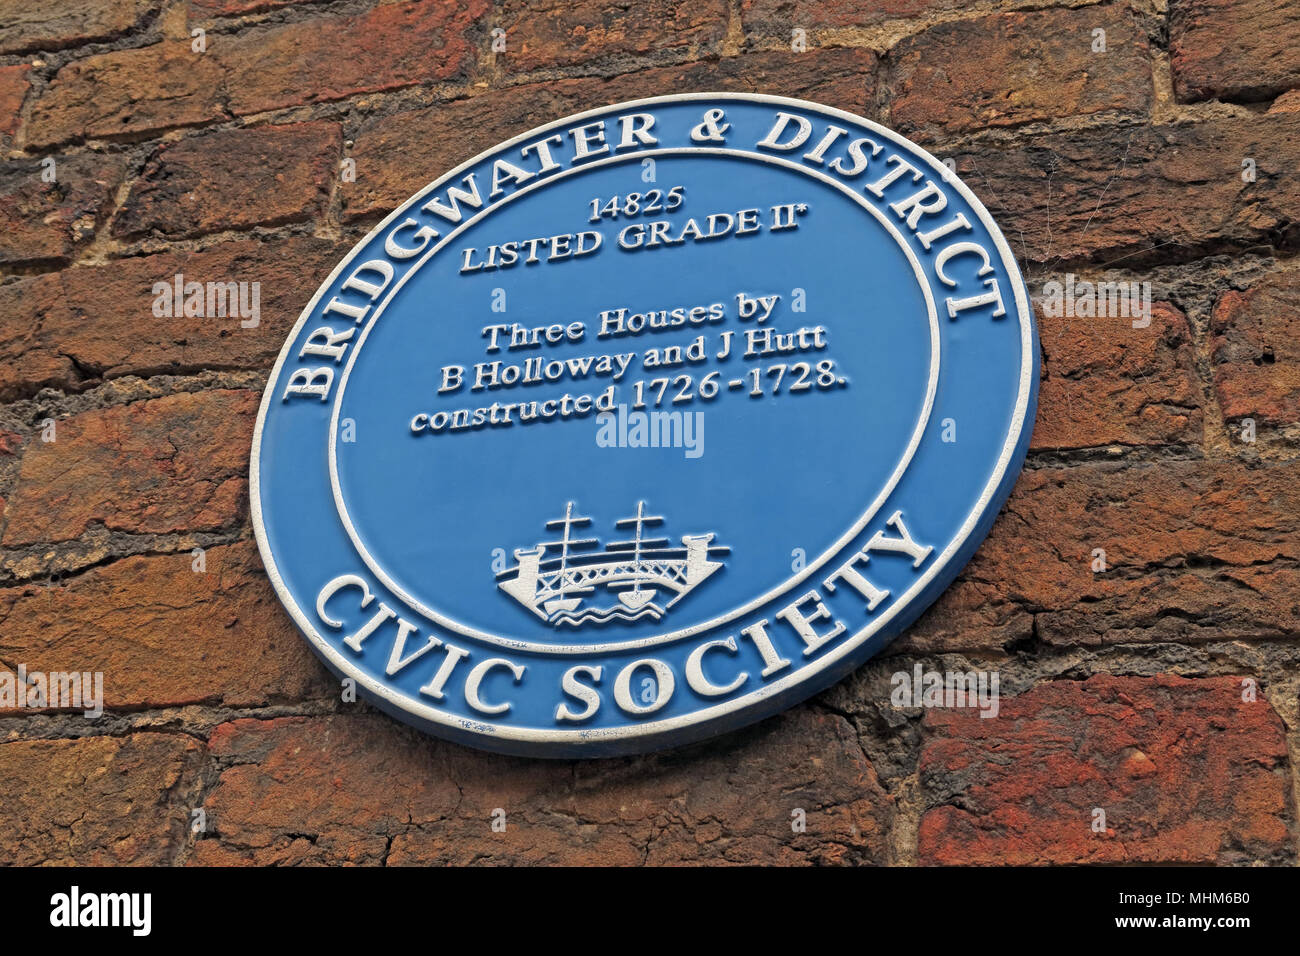 SDC,and,District,Civic,Society,blue,plaque,By,Holloway and Hutt,North Somerset,England,UK,GB,Gotonysmith,constructed,1726-1728,three Houses,Bridgwater & District,Bridgewater,wall,brick,chandos St,Chandos,street,home,homes,buildings,cottage,cottages,history,historic,built,3 houses,3 homes,levels,Somerset Levels,Brigg,Brigg-Walter